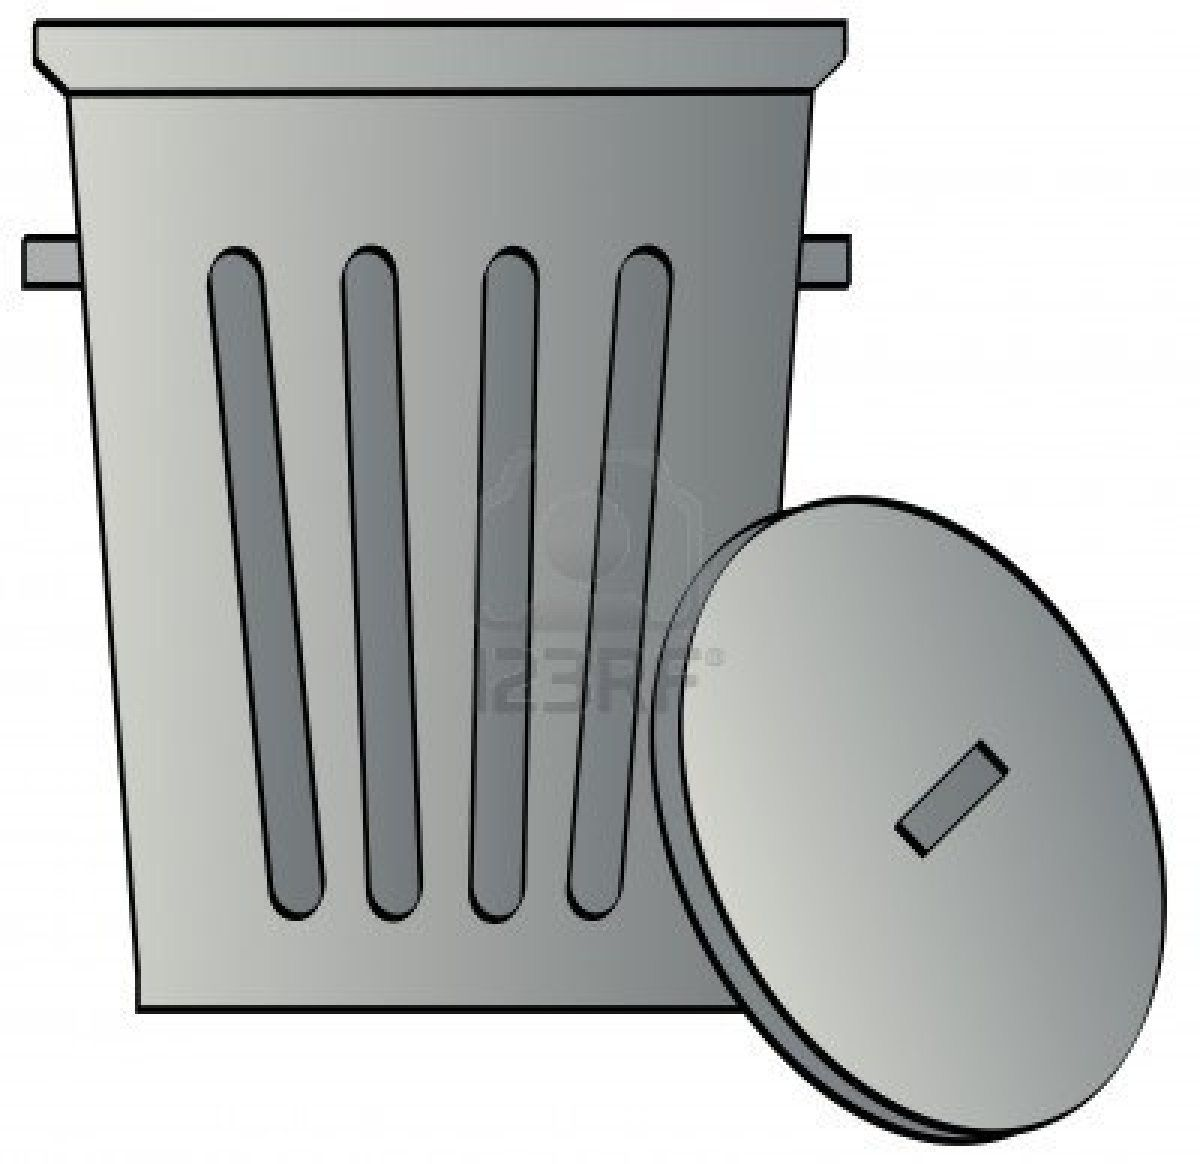 Metal Galvanized Garbage Can With Lid Vector Stock Photo Garbage Can Garbage Galvanized